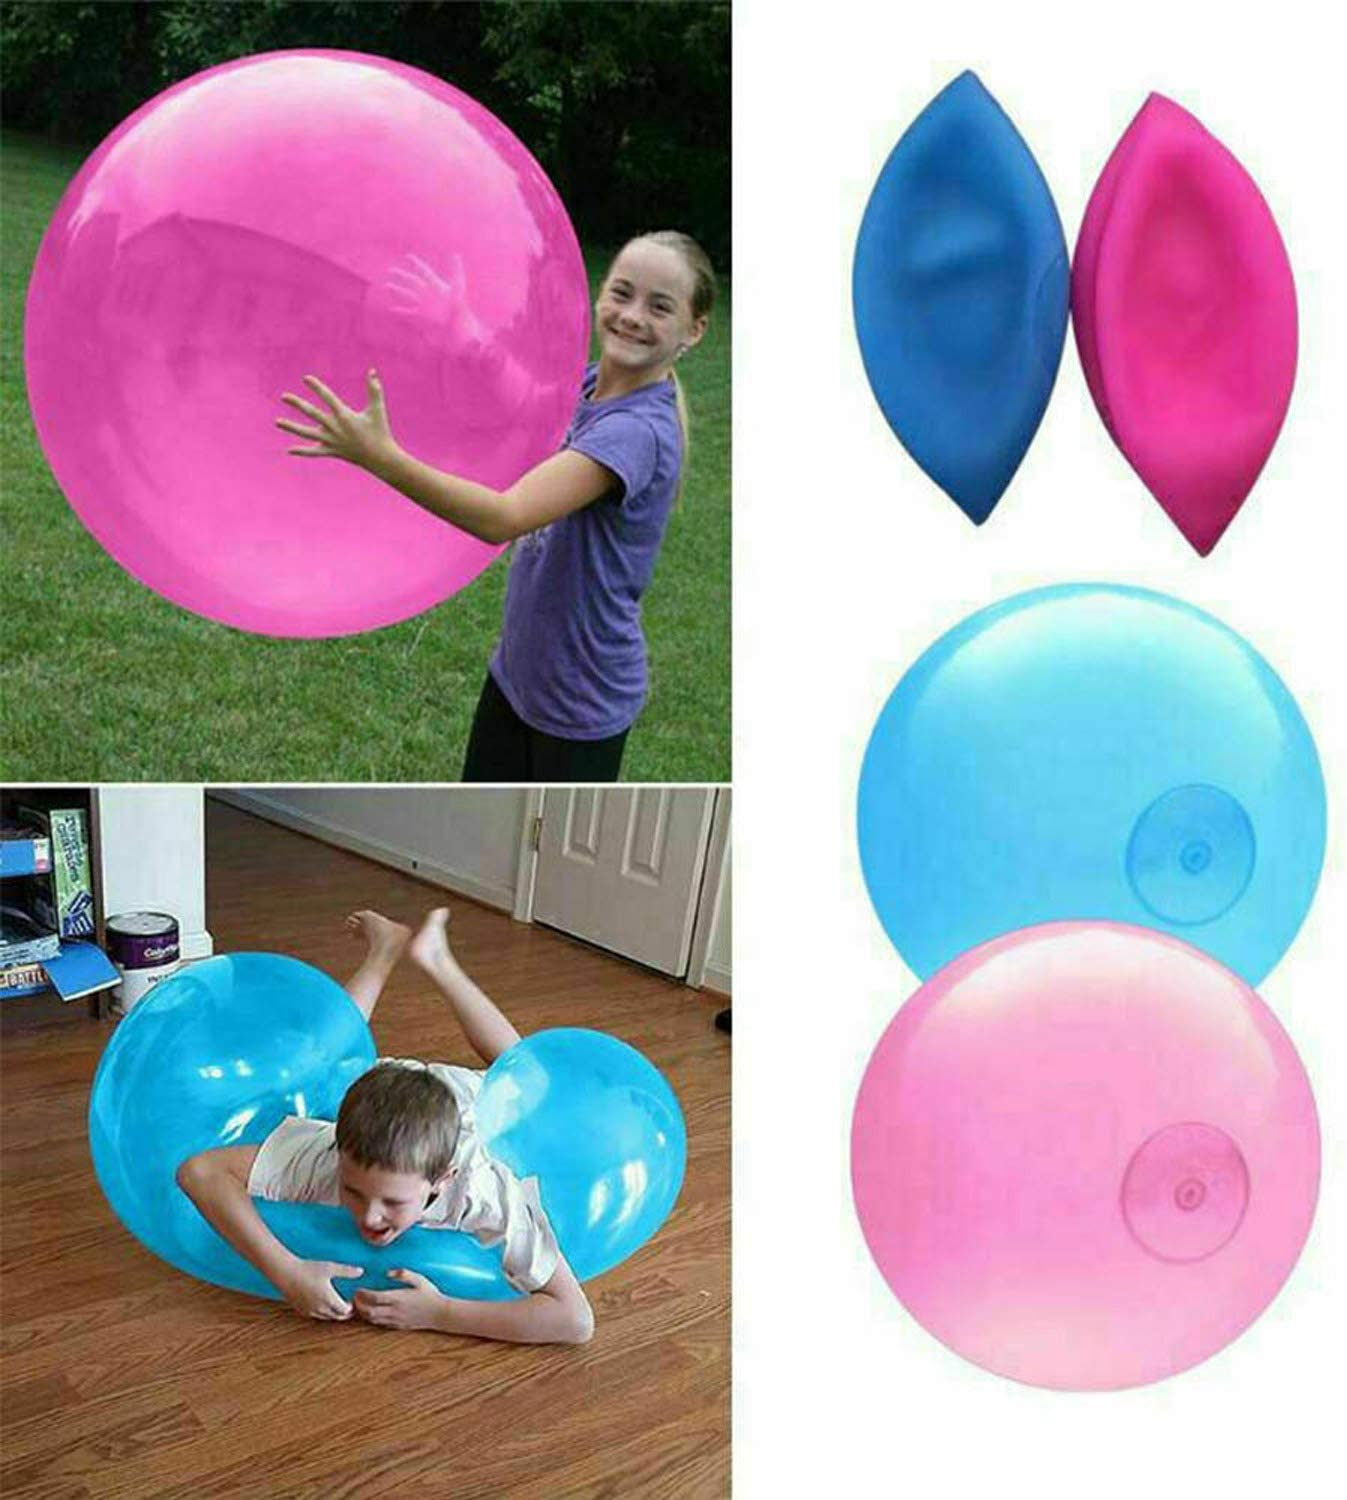 Gift Idea for Boys zxtrby Bubble Ball Toy 46.8 for Adults Kids Inflatable Water Ball Beach Garden Ball Soft Rubber Ball Outdoor Party Favor for Kids